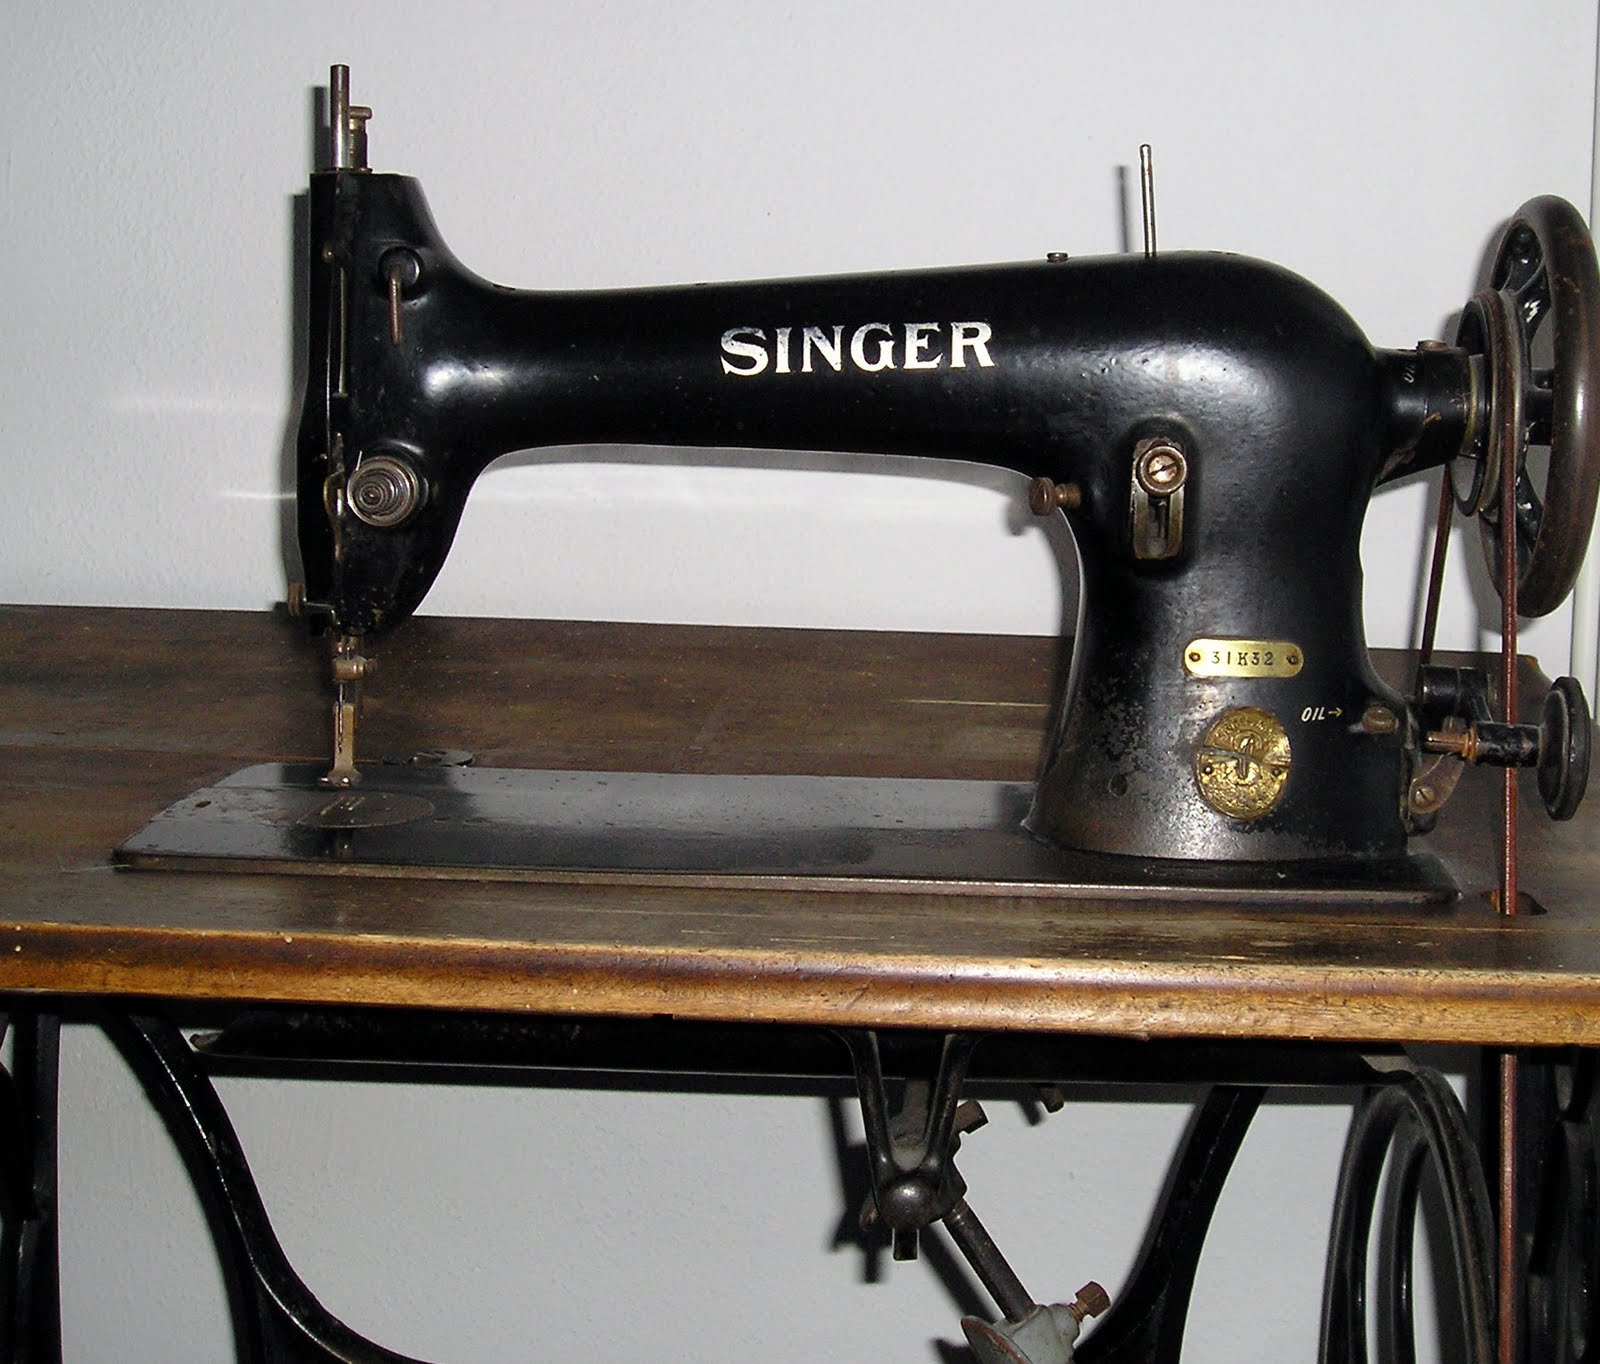 Singer Merritt 2430 Sewing Machine - Welcome to The Brown House in